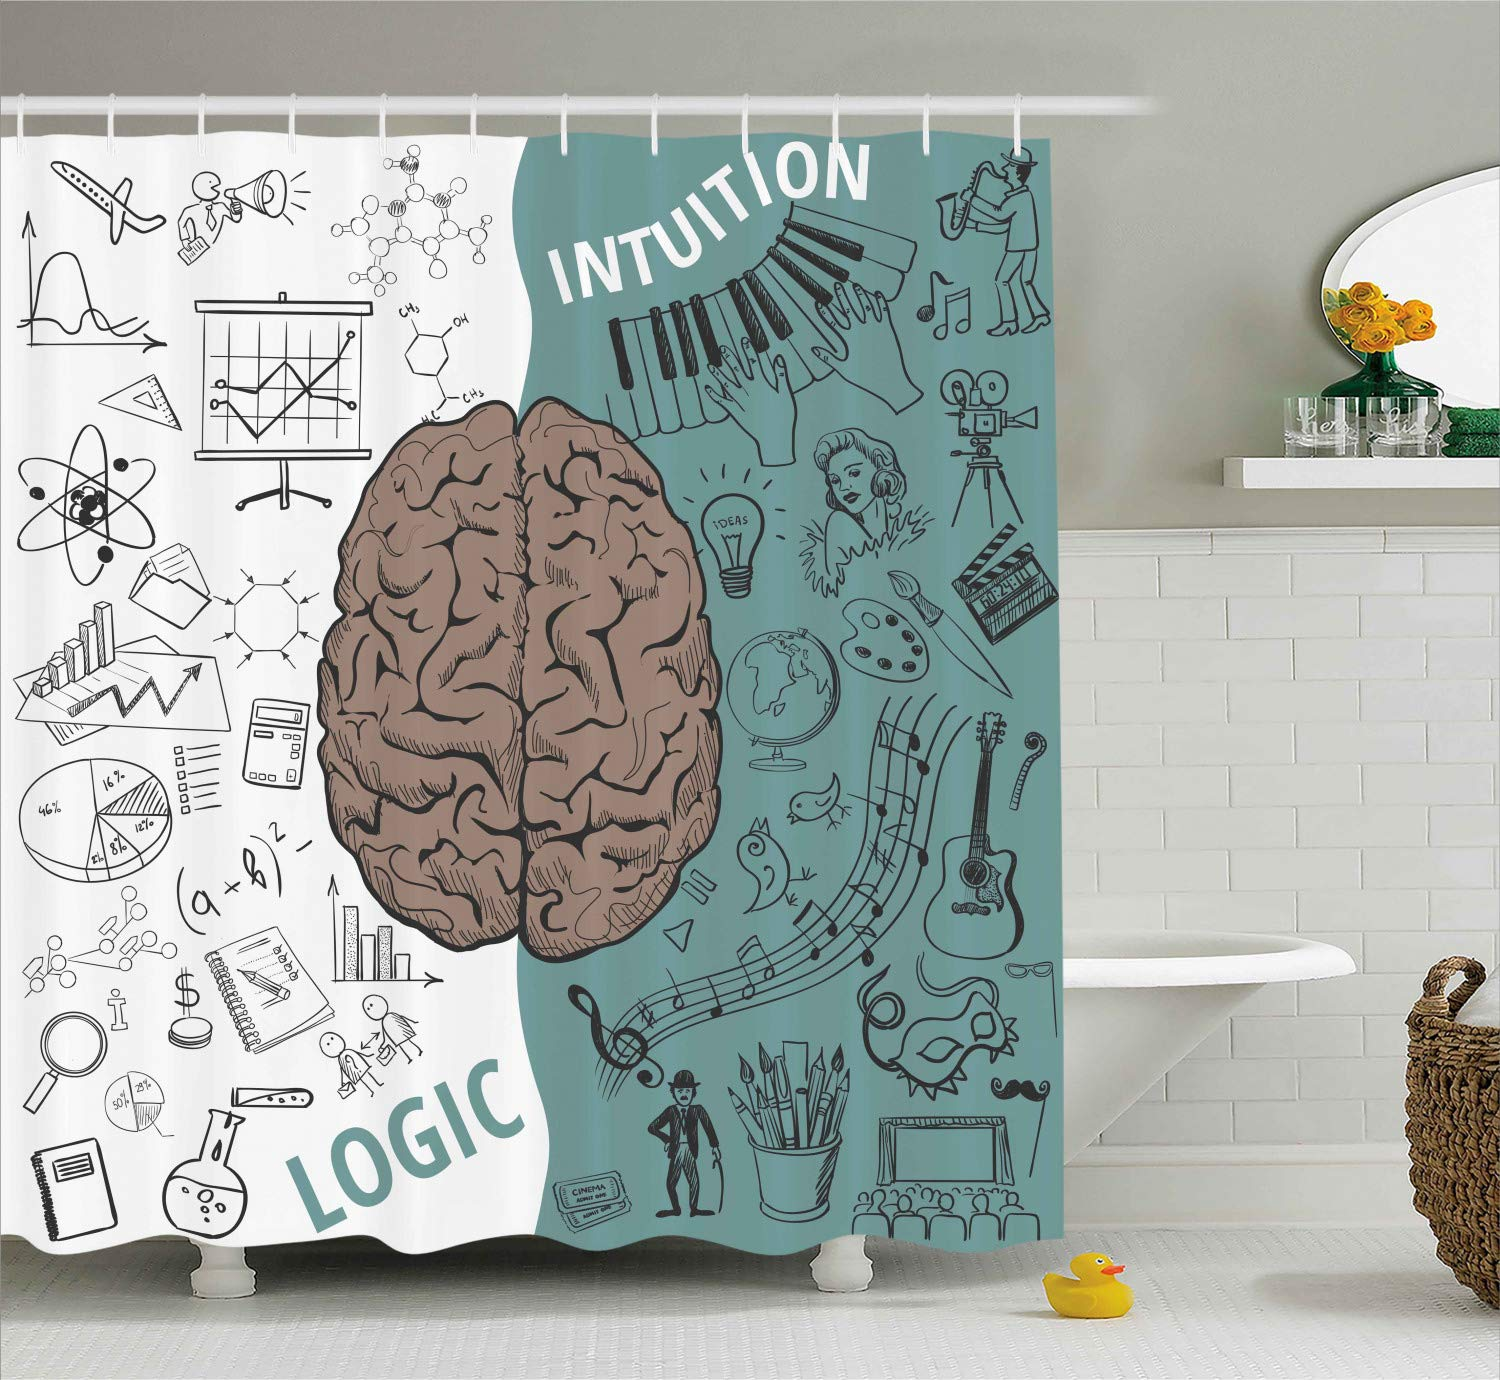 Ambesonne Modern Shower Curtain, Brain Image with Left and Right Side Music Logic Artwork Side Science Print, Cloth Fabric Bathroom Decor Set with Hooks, 75'' Long, White Teal